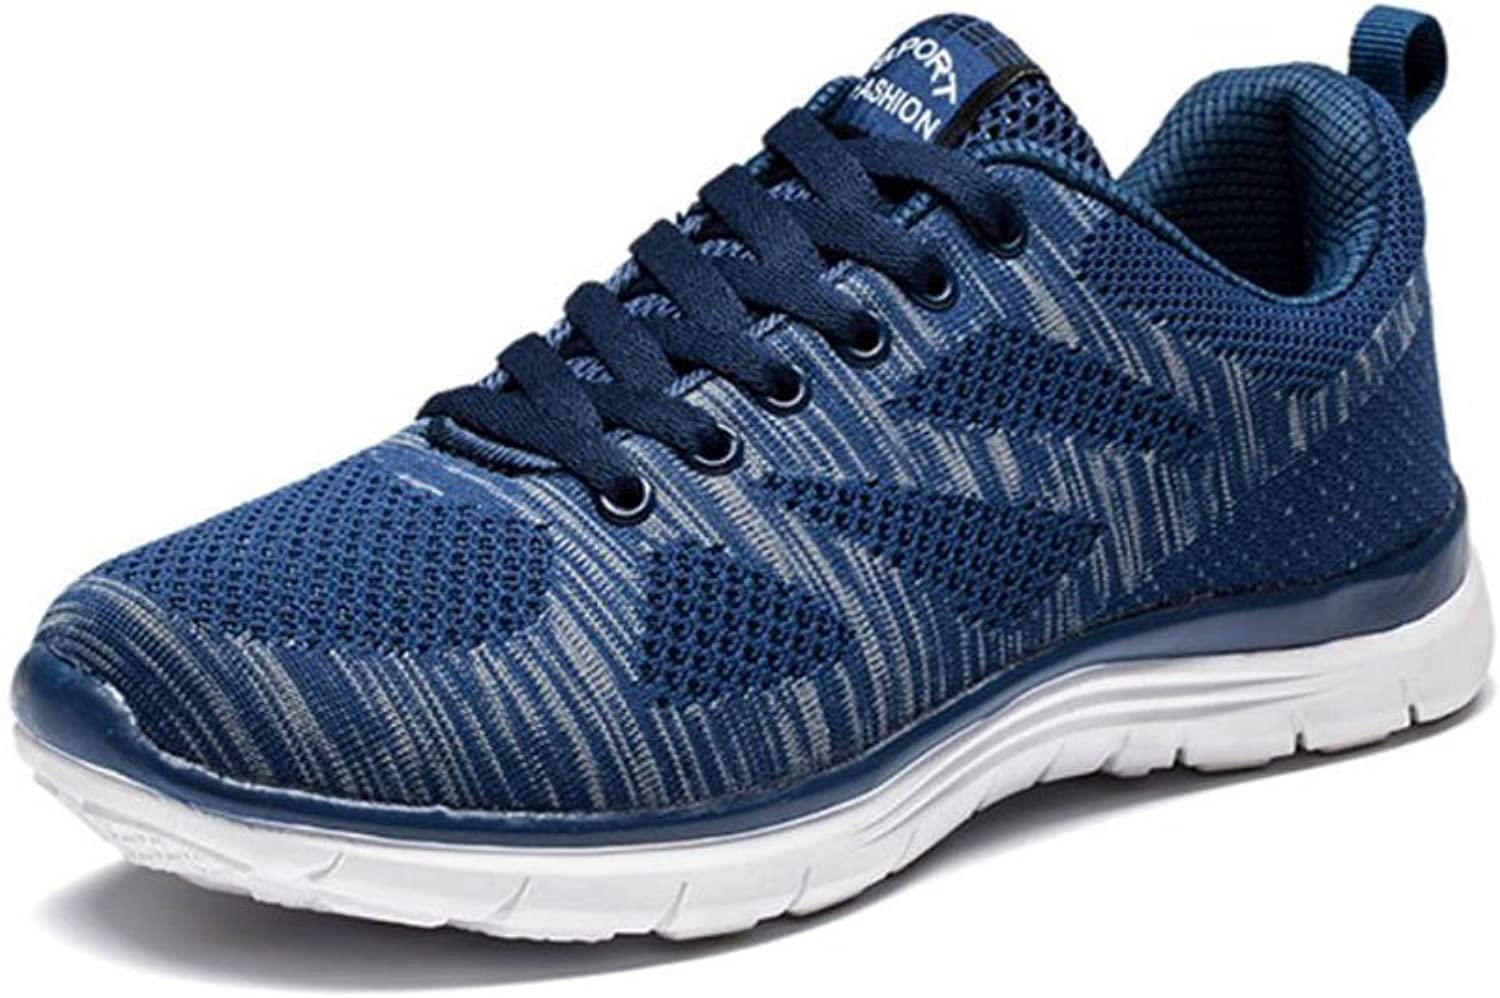 Men's Knit Mesh Sneakers Spring Fall New Breathable Running Sports shoes Mens Lightweight Casual Walking Travel shoes (color   bluee, Size   43)